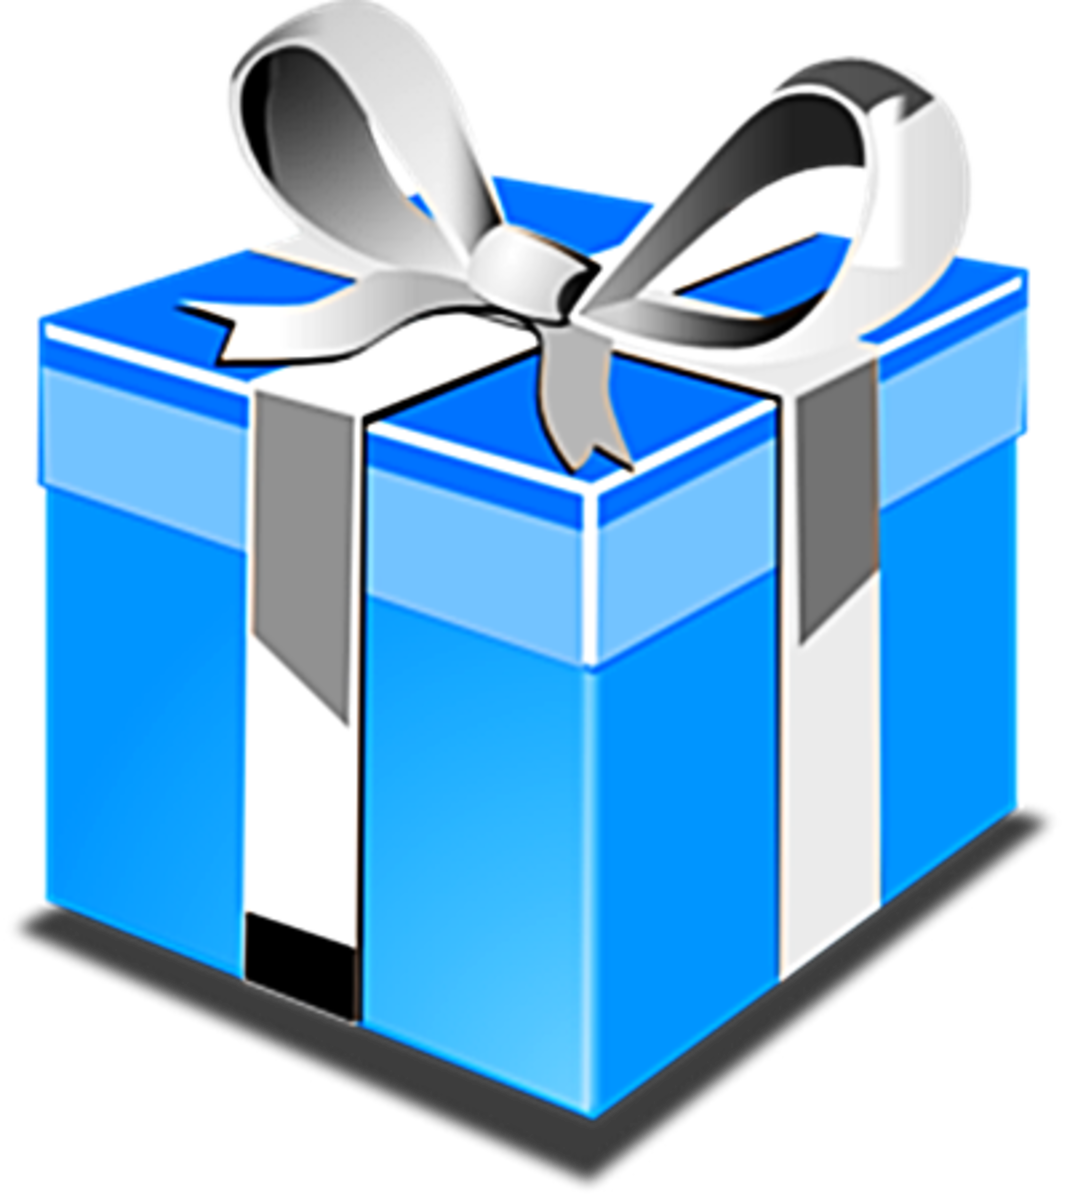 - 2013 Best Gifts for Men - Garage Tools Gift Ideas under $100, by Rosie2010, clipart by Larry Mondello, Clker.com -